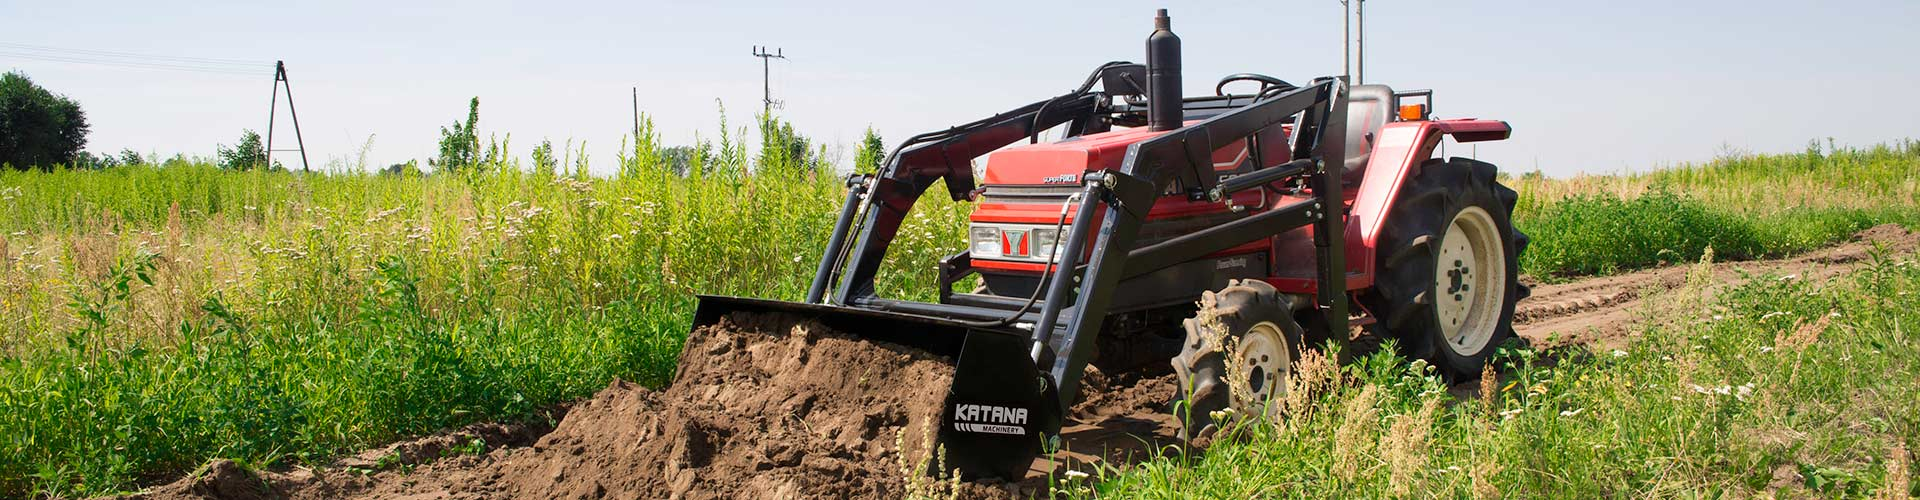 Compact tractor using front loader to leveling ground